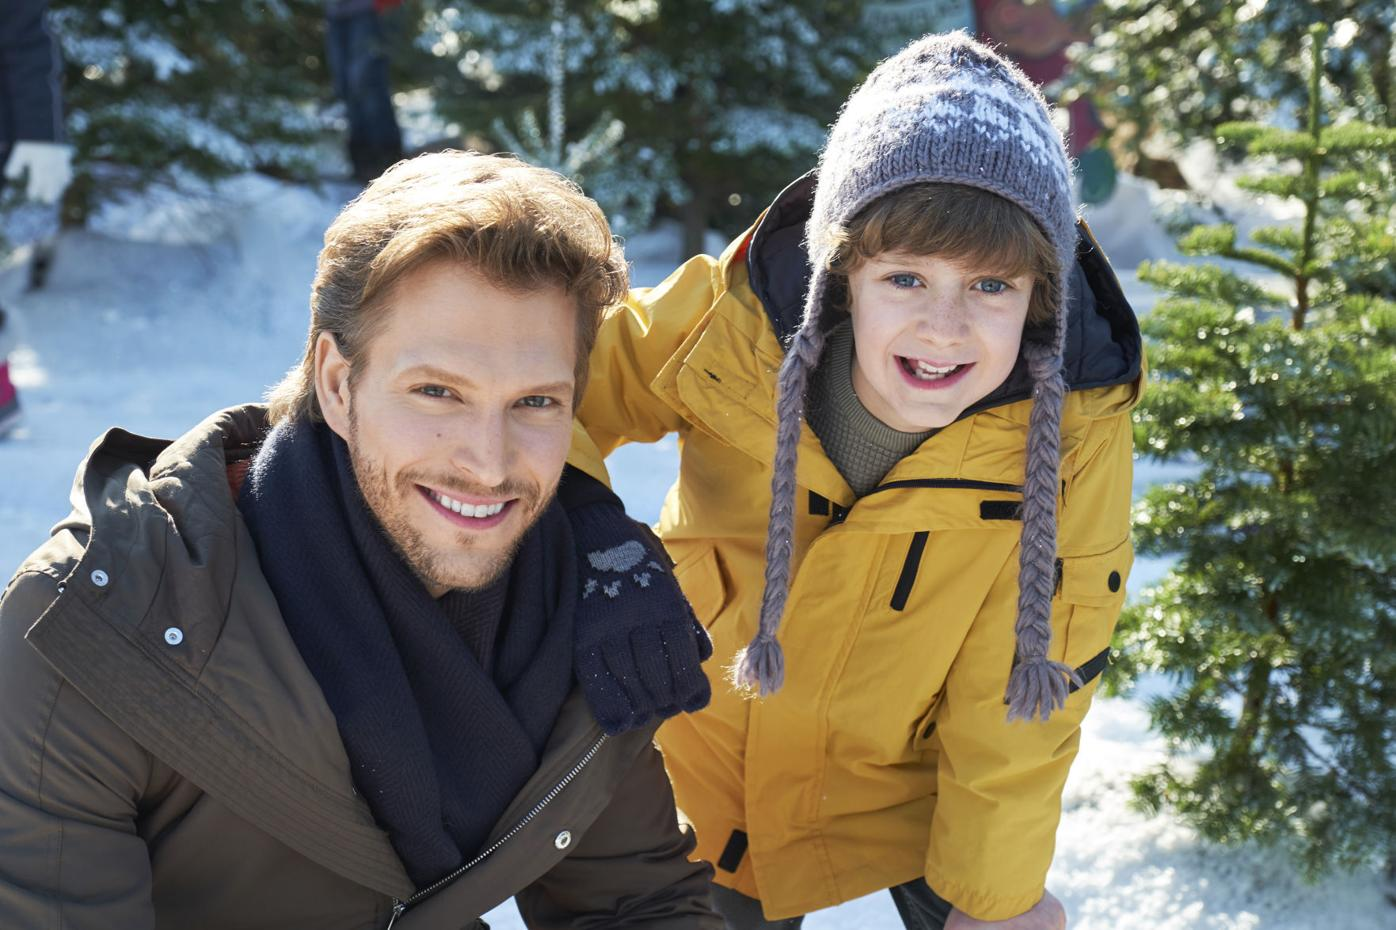 Get into the Christmas spirit with Hallmark Christmas movies